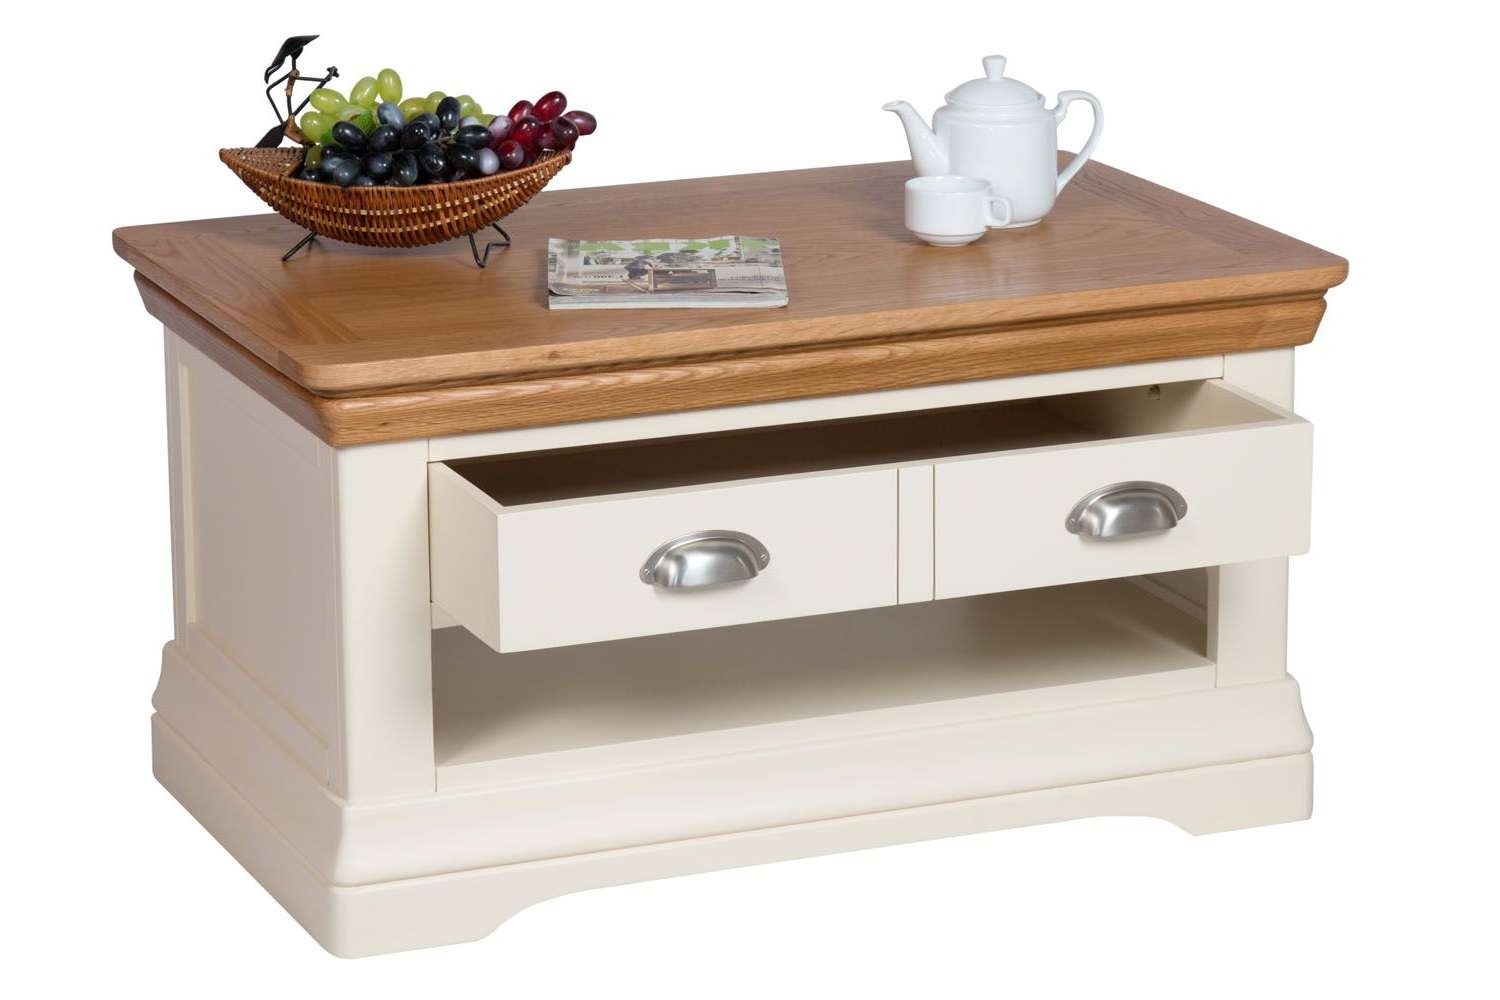 Farmhouse Cream Painted Oak Coffee Table With Drawers Intended For Preferred Cream And Oak Coffee Tables (View 9 of 20)